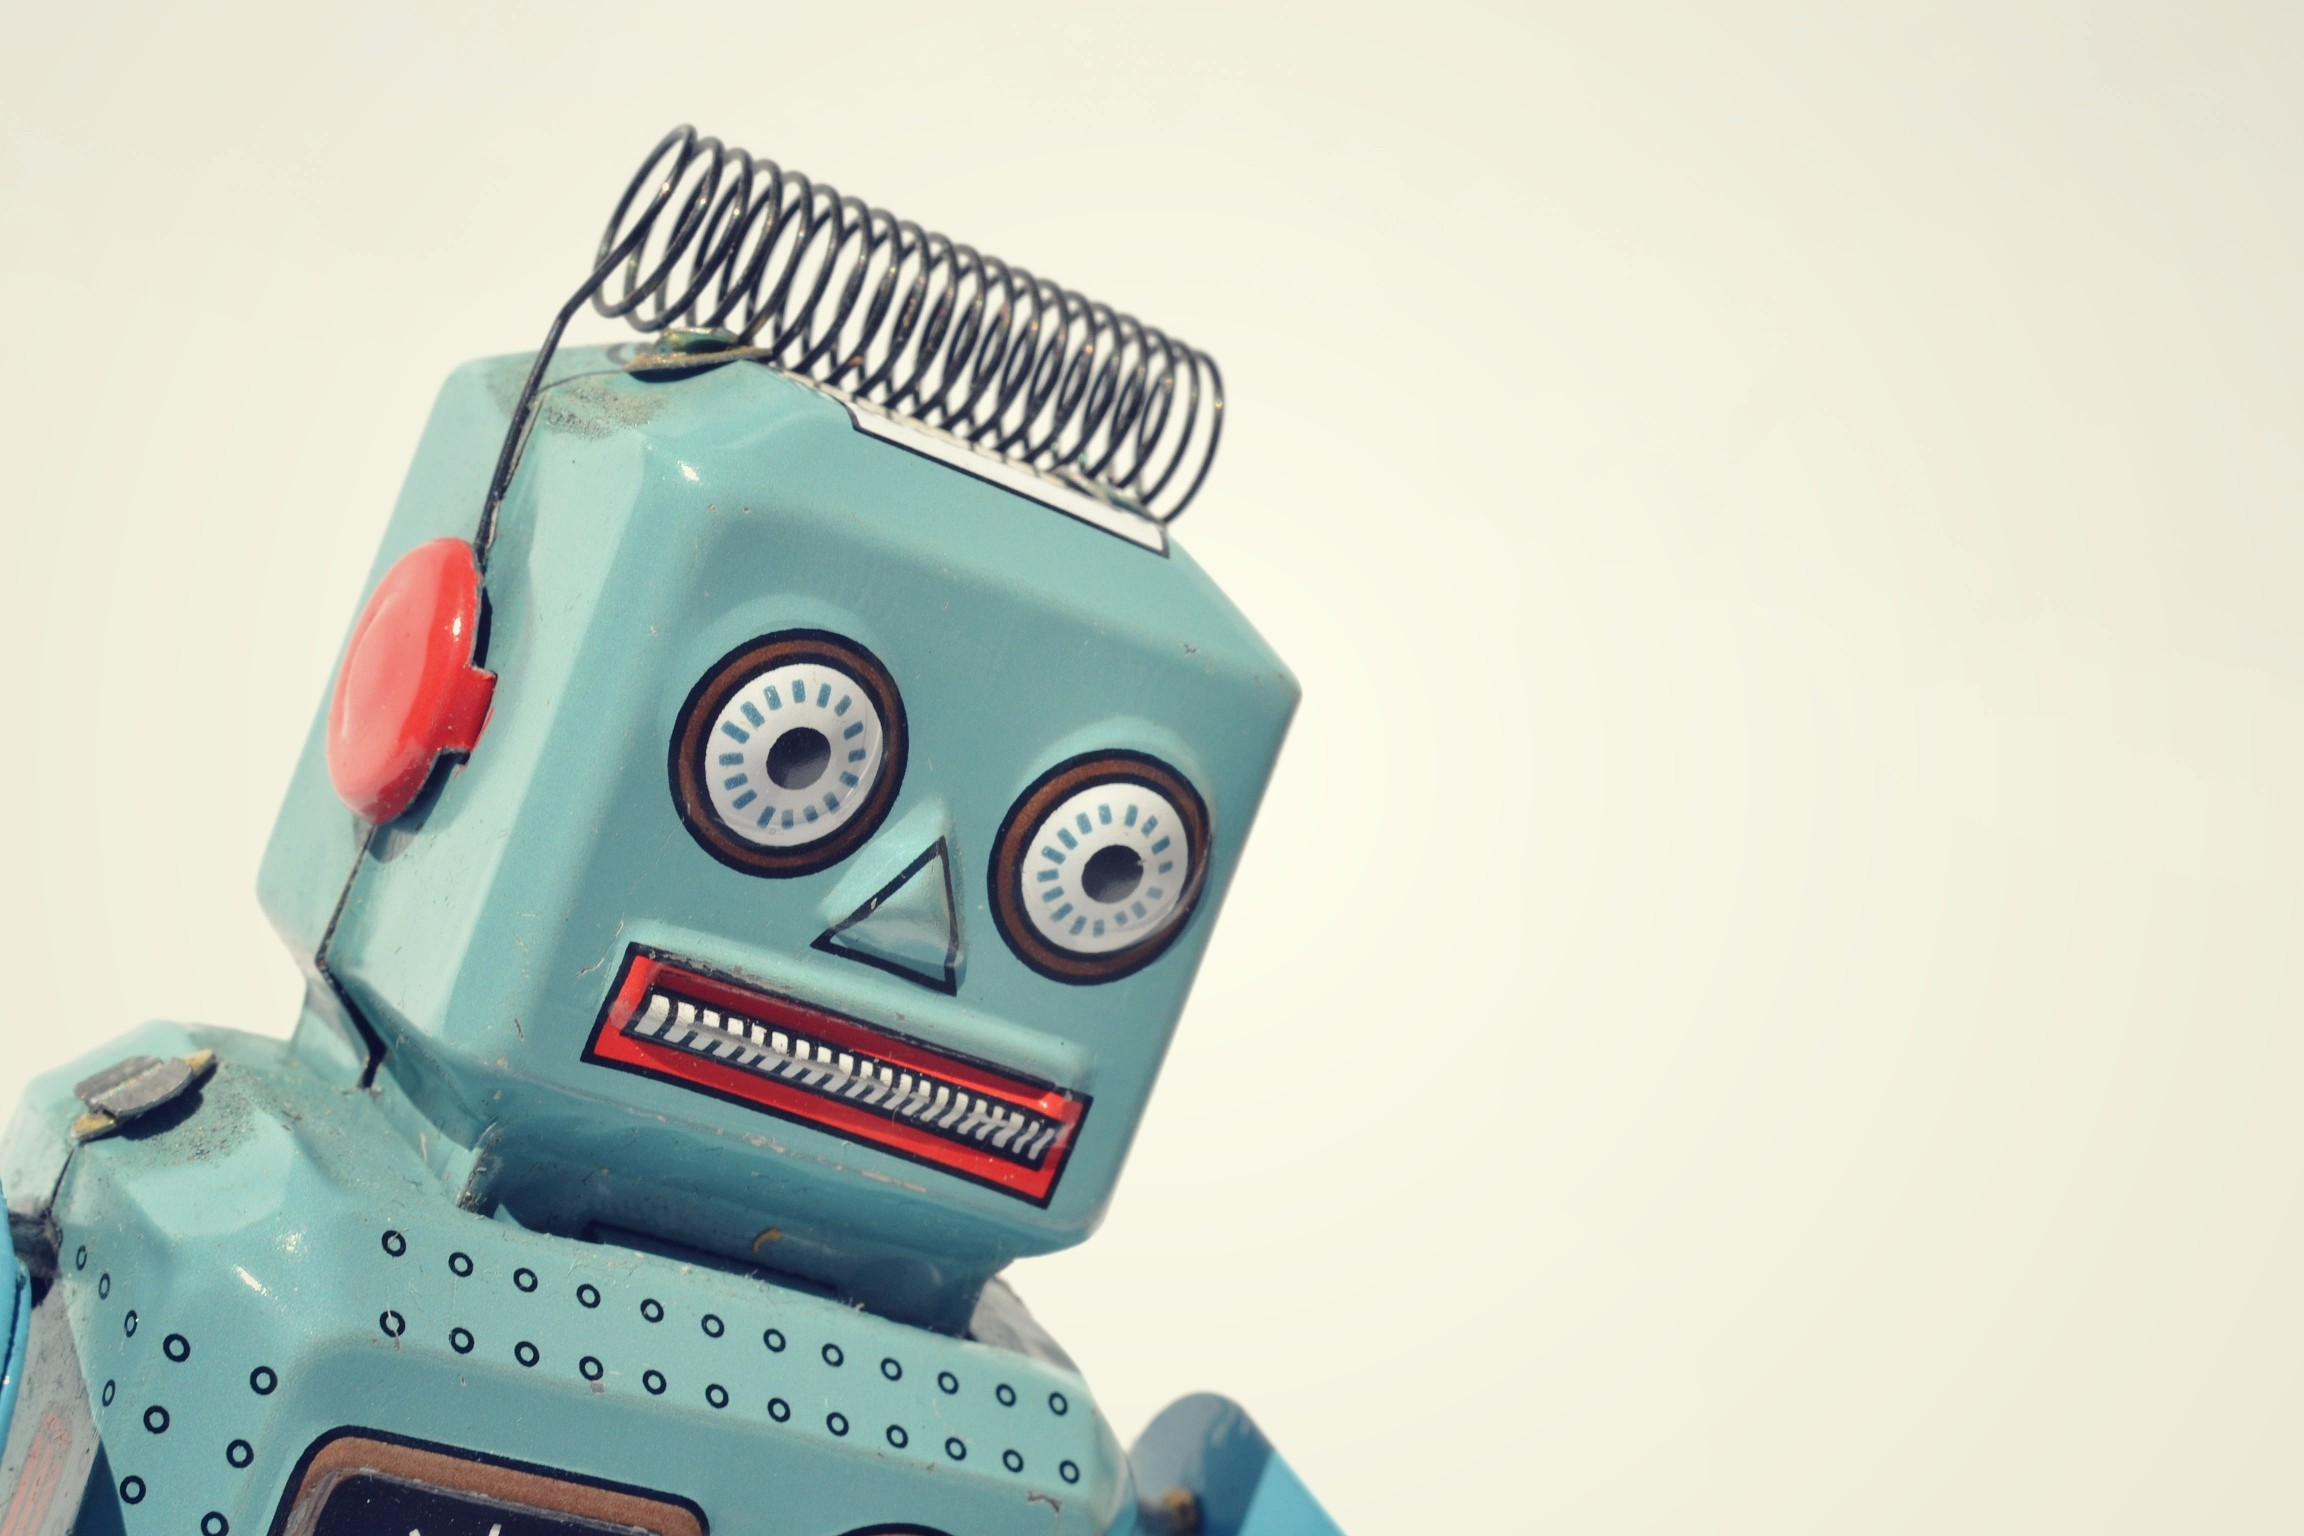 Chatbots Gone Wild! A Brief History of Chatbot Marketing (& Where It's Going) [Infographic]